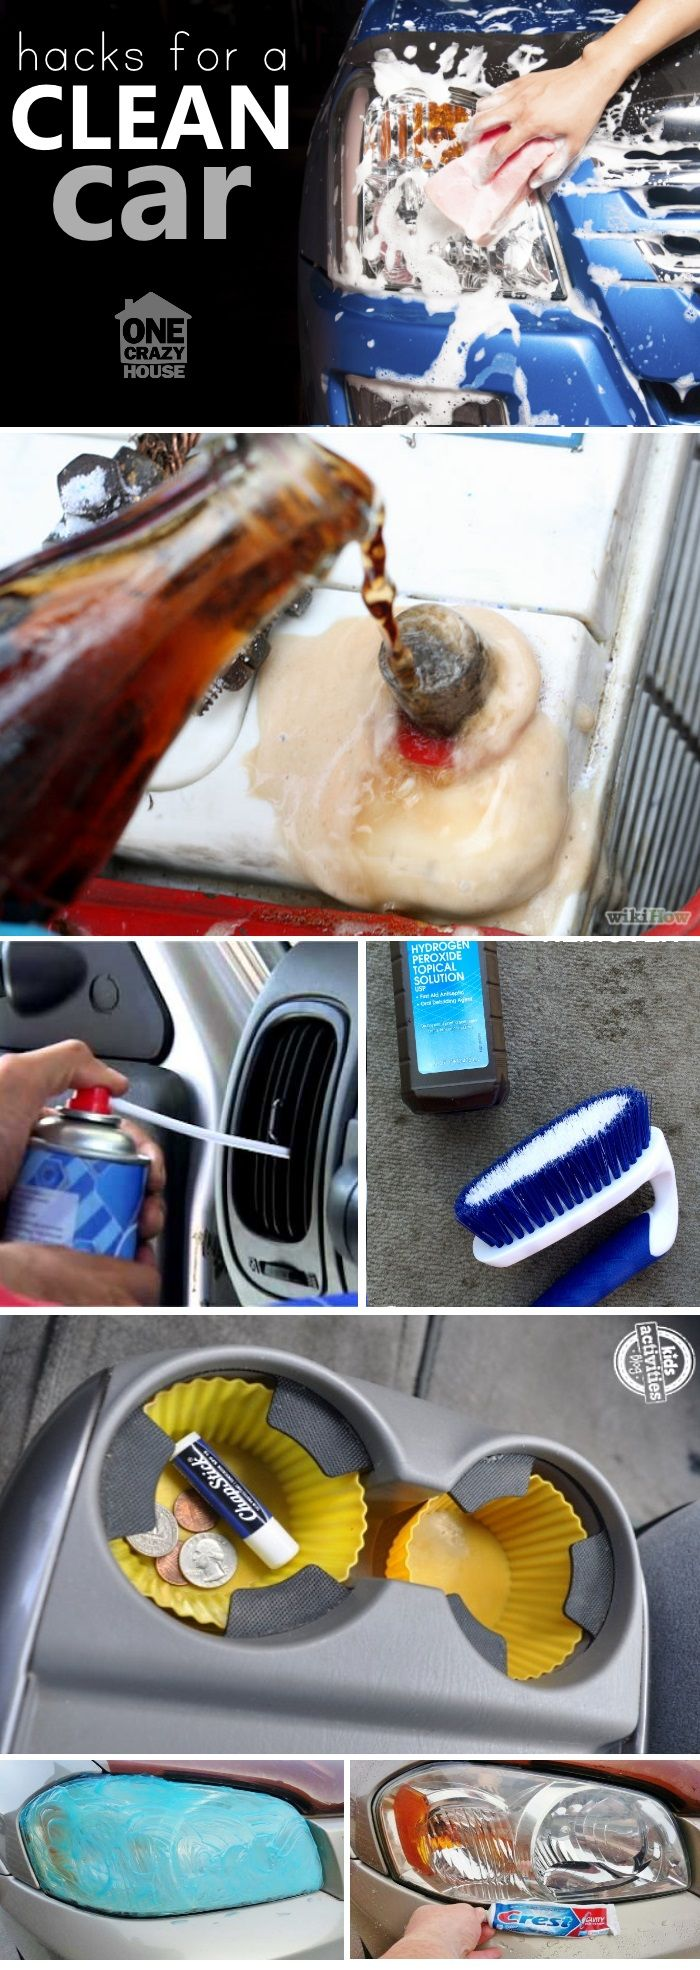 1125 best handy vehicle tips images on pinterest tips car hacks 12 genius car cleaning tip that will get your car clean fast solutioingenieria Image collections